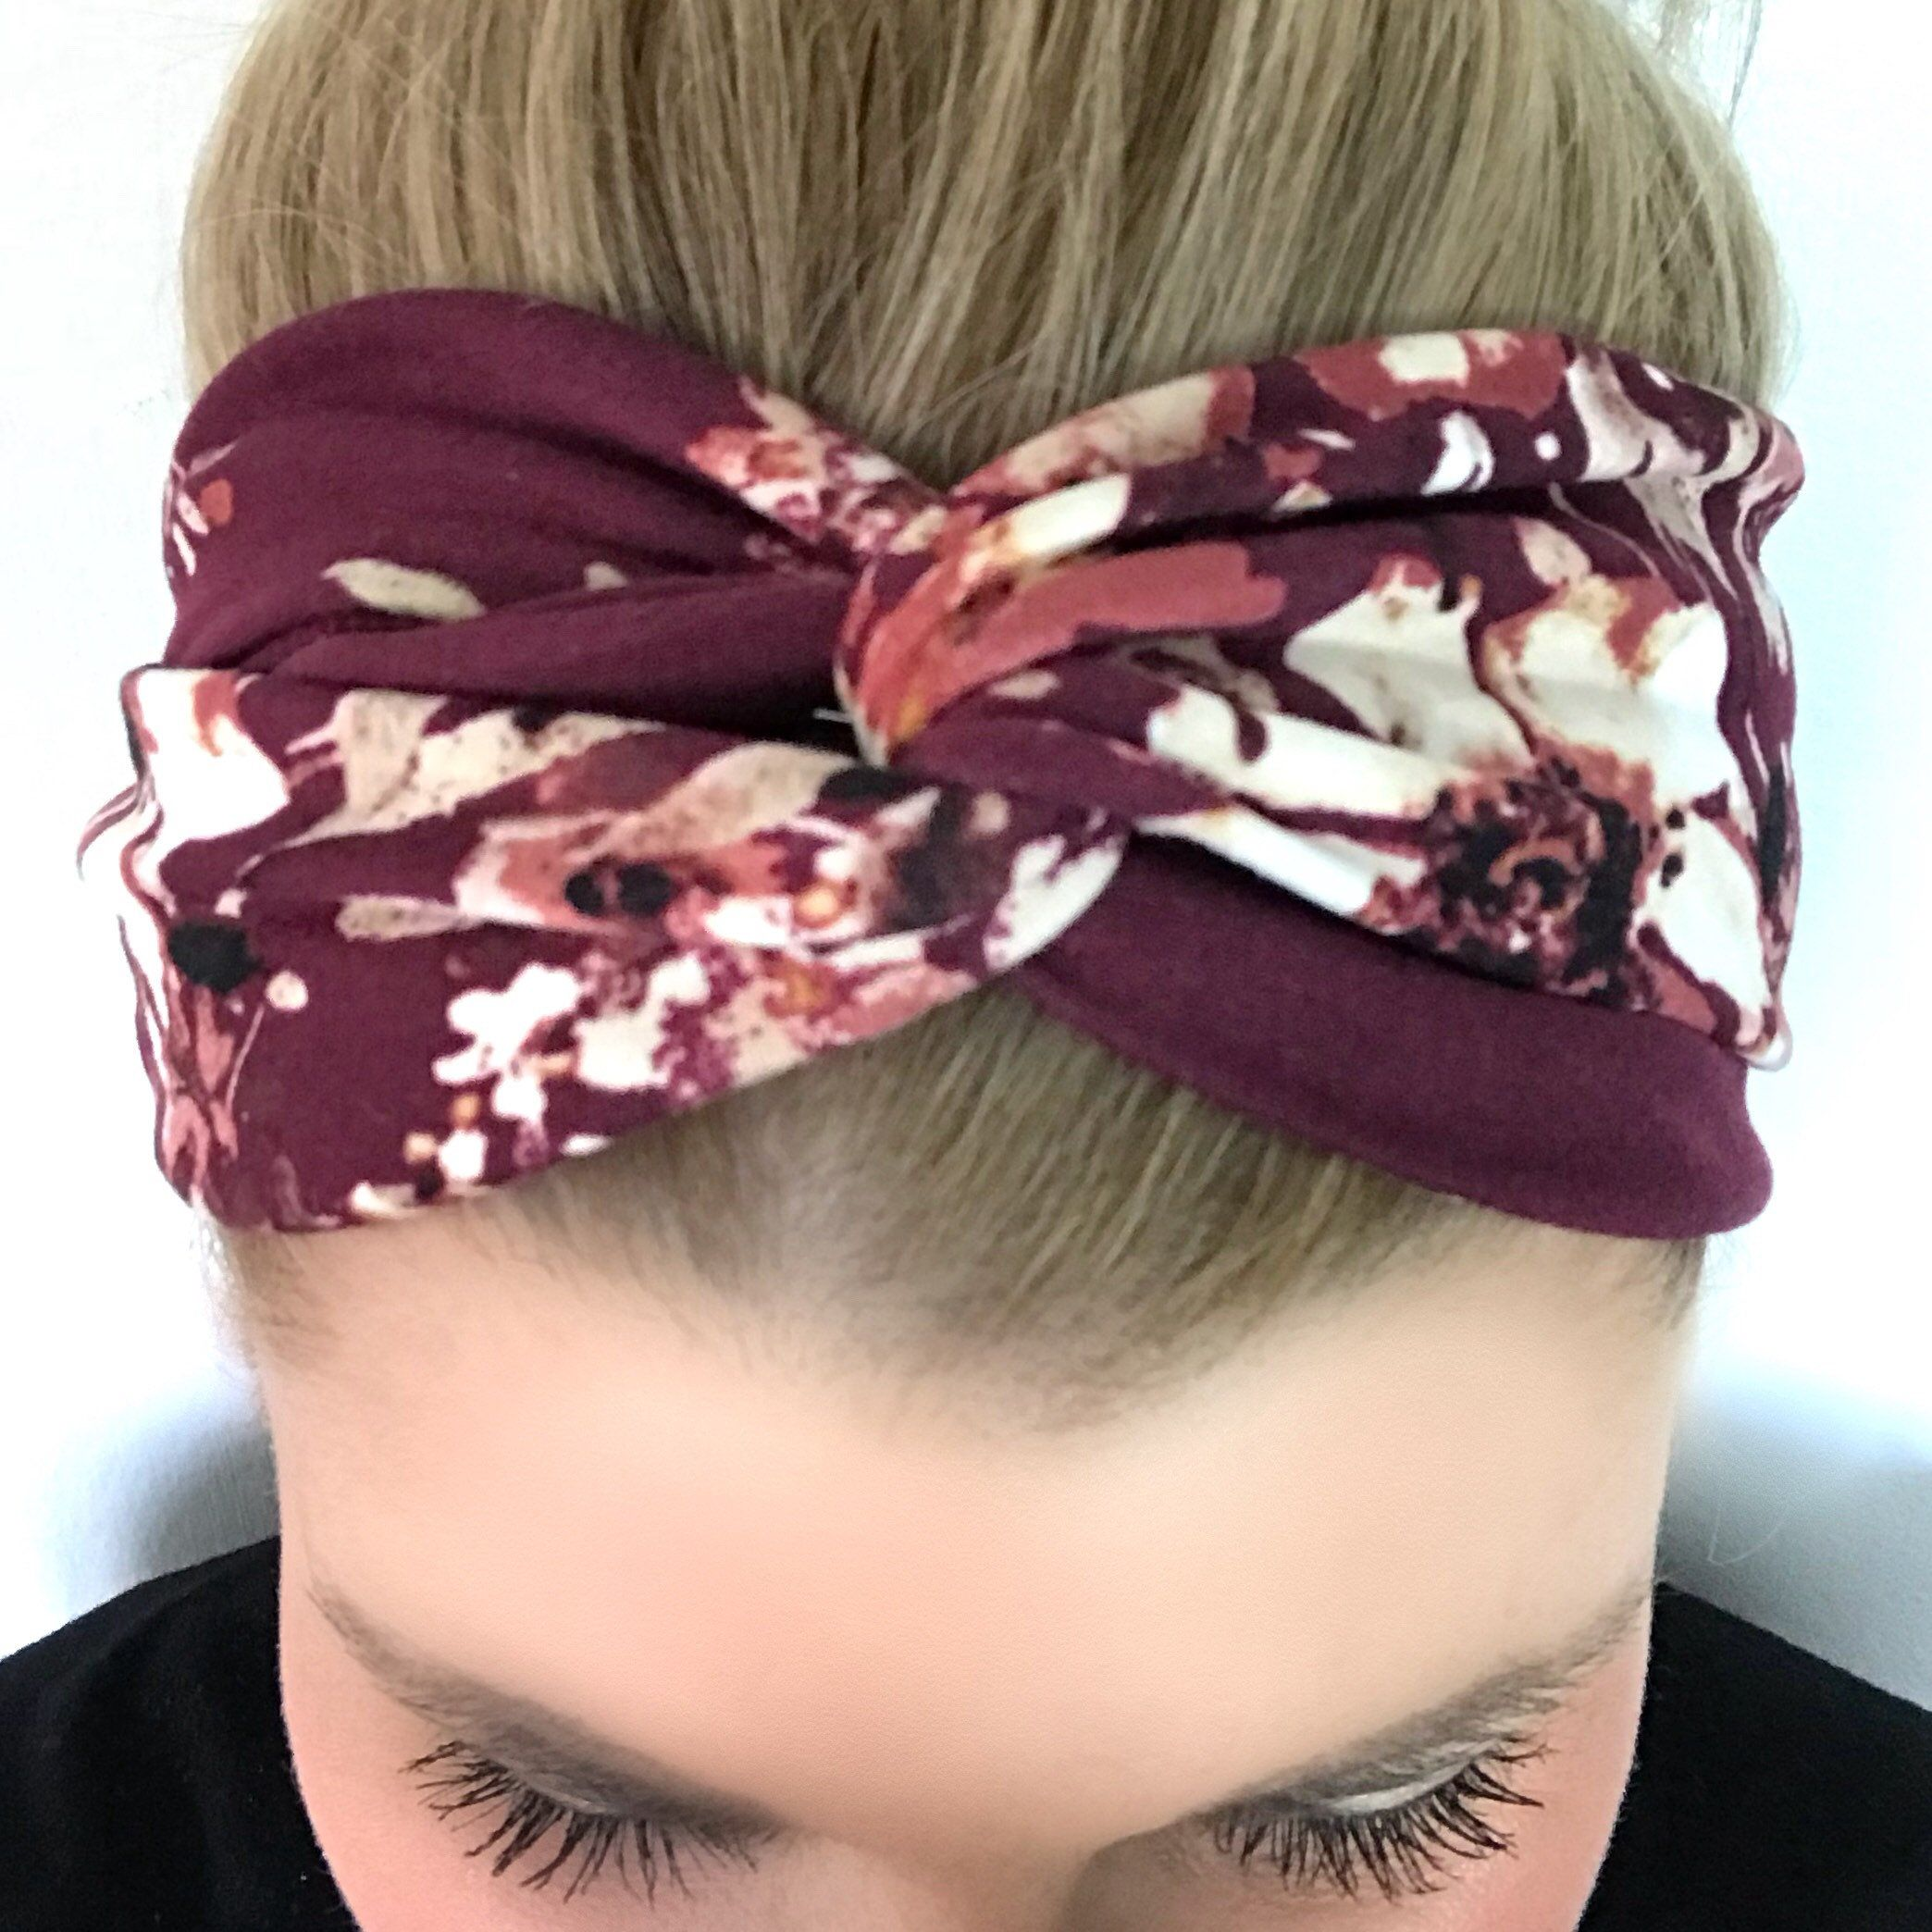 Burgundy Floral Turban Headband - Headbands for Women- Wine - Maroon - boho  headband - Knot headband adult - headband women - flower print db1a736abe0